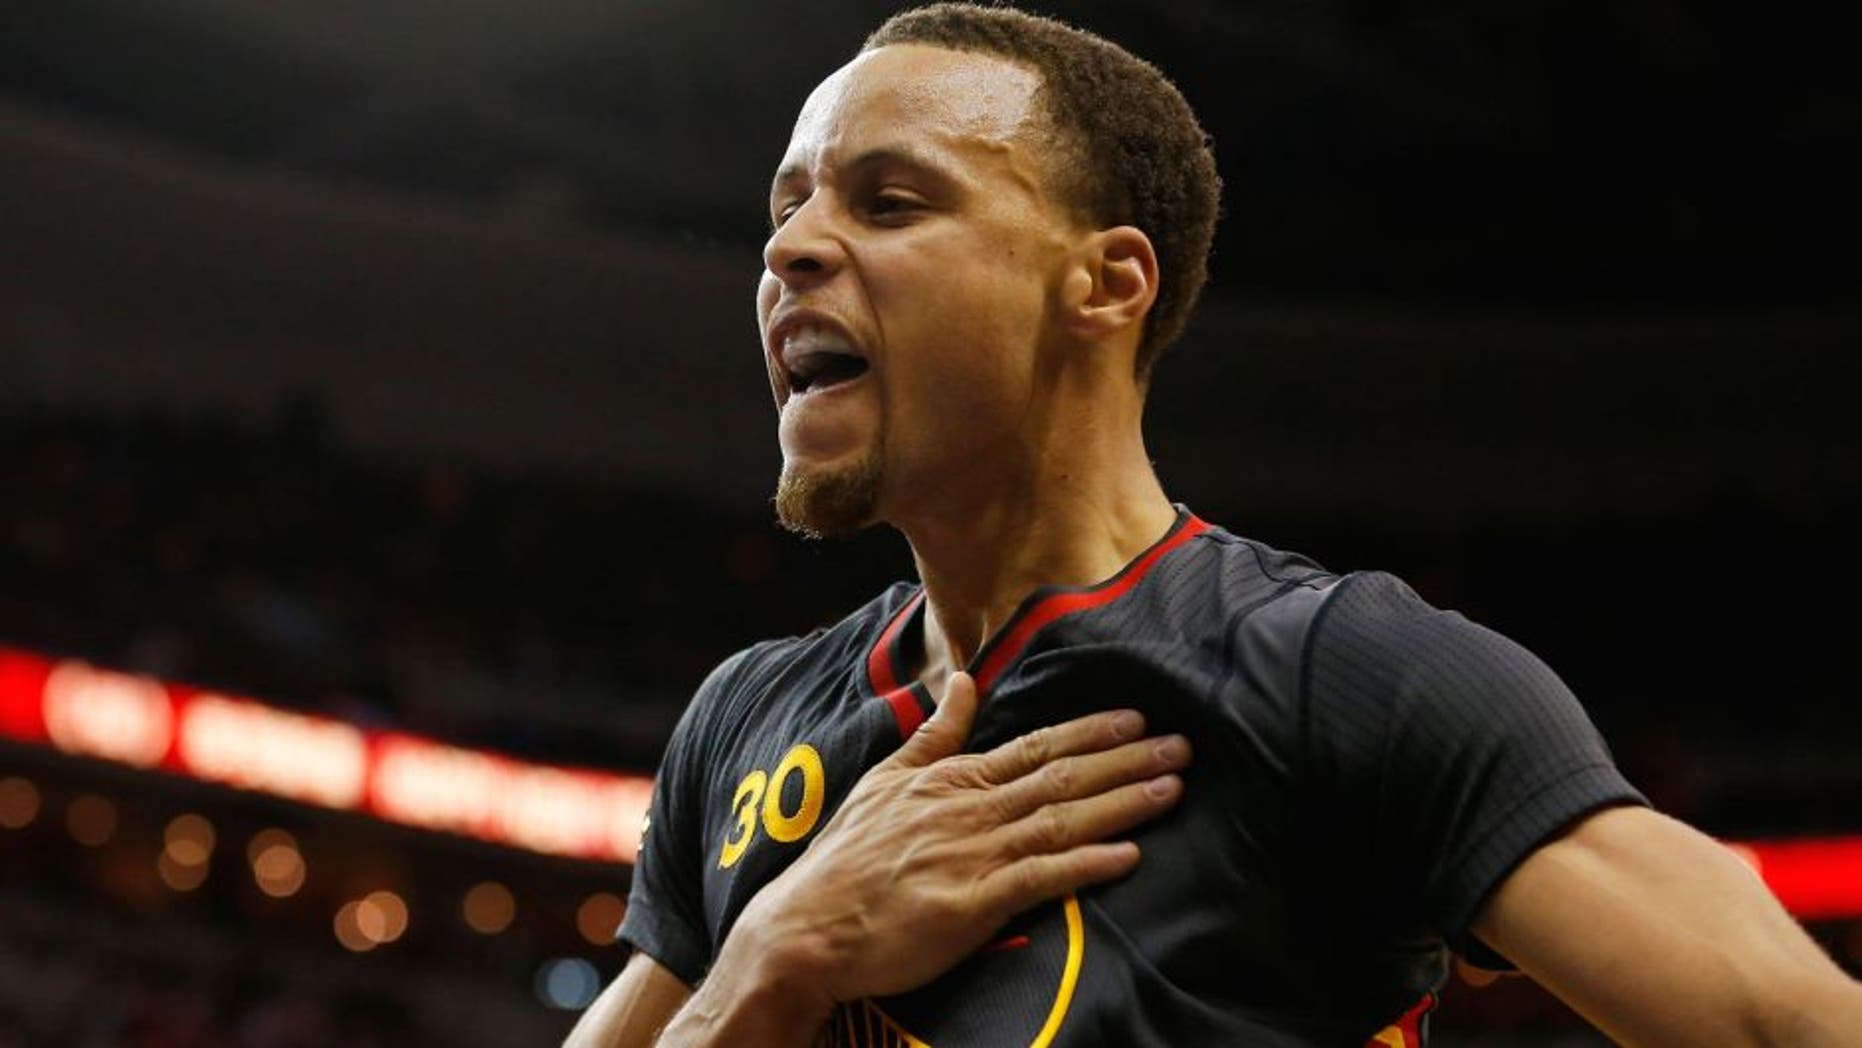 Feb 24, 2015; Washington, DC, USA; Golden State Warriors guard Stephen Curry (30) gestures on the court against the Washington Wizards in the third quarter at Verizon Center. The Warriors won 114-107. Mandatory Credit: Geoff Burke-USA TODAY Sports